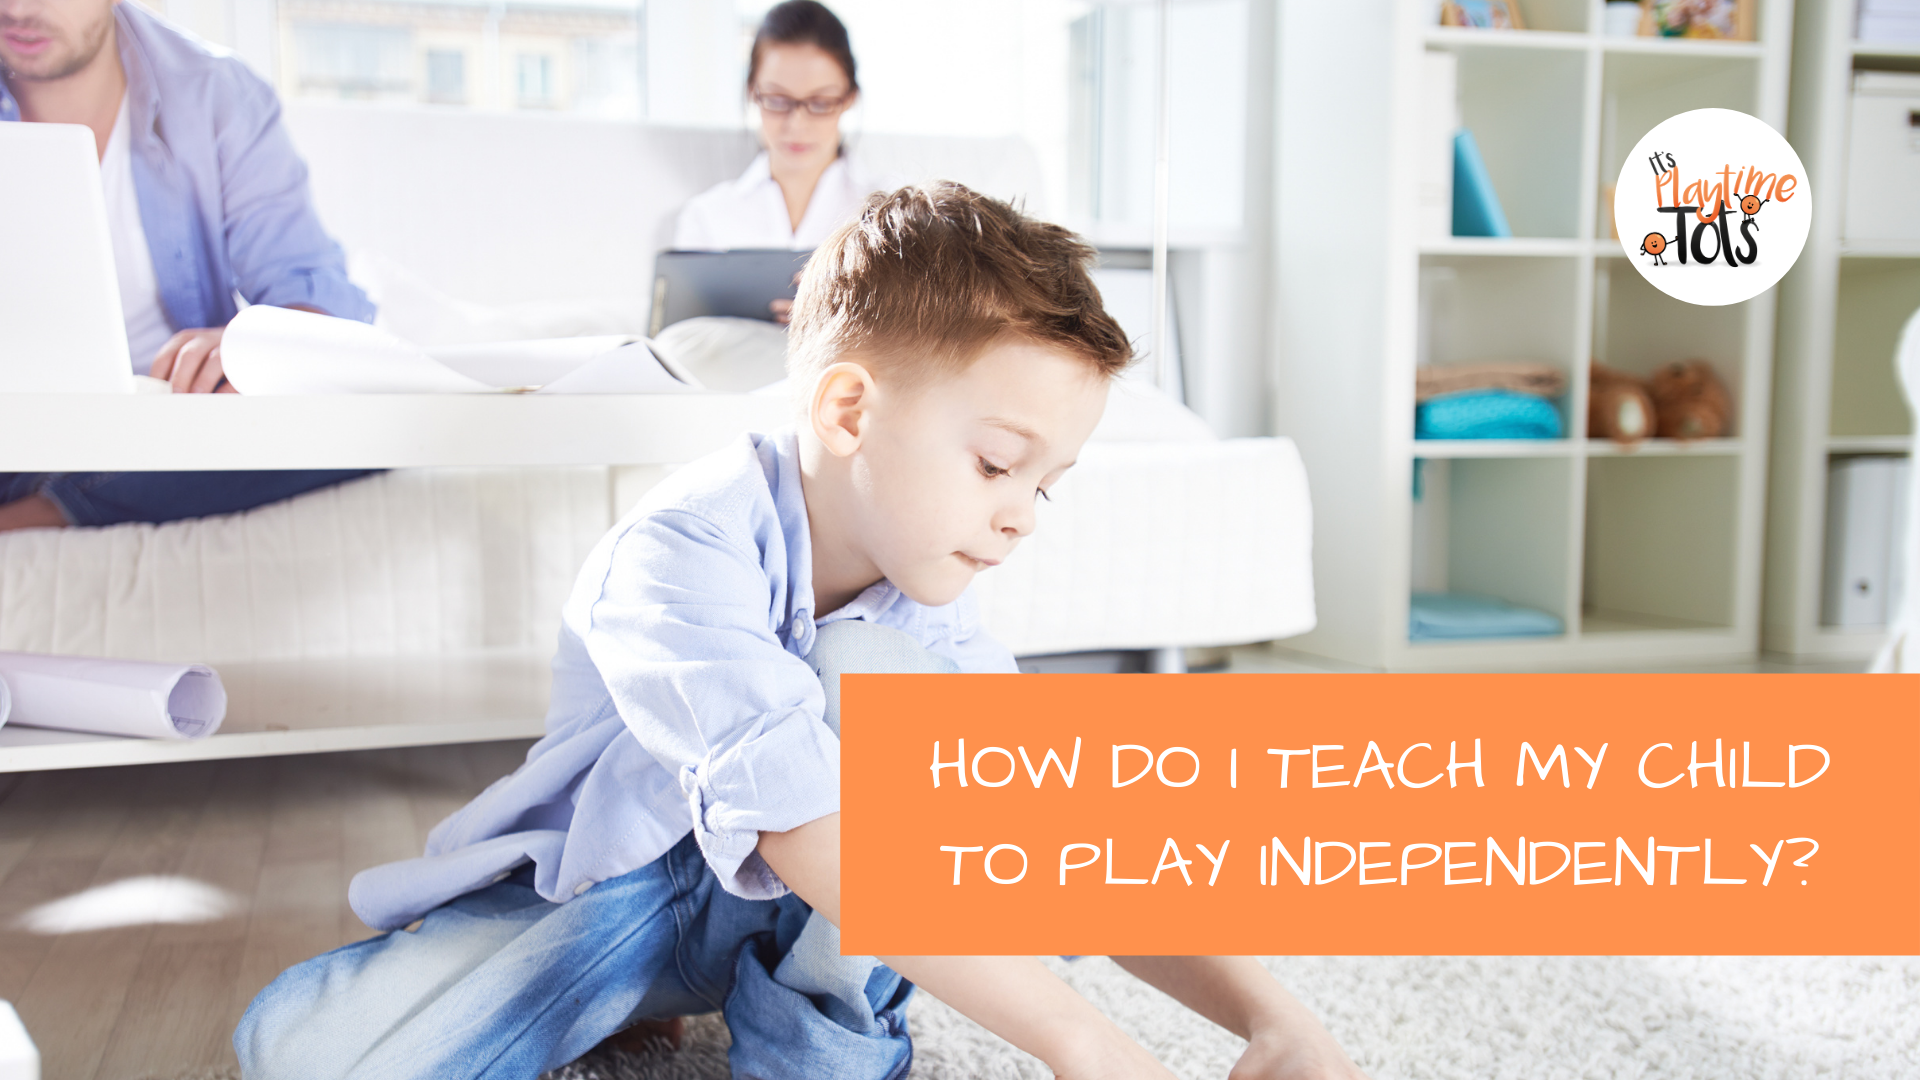 How Do I Teach My Child To Play Independently?